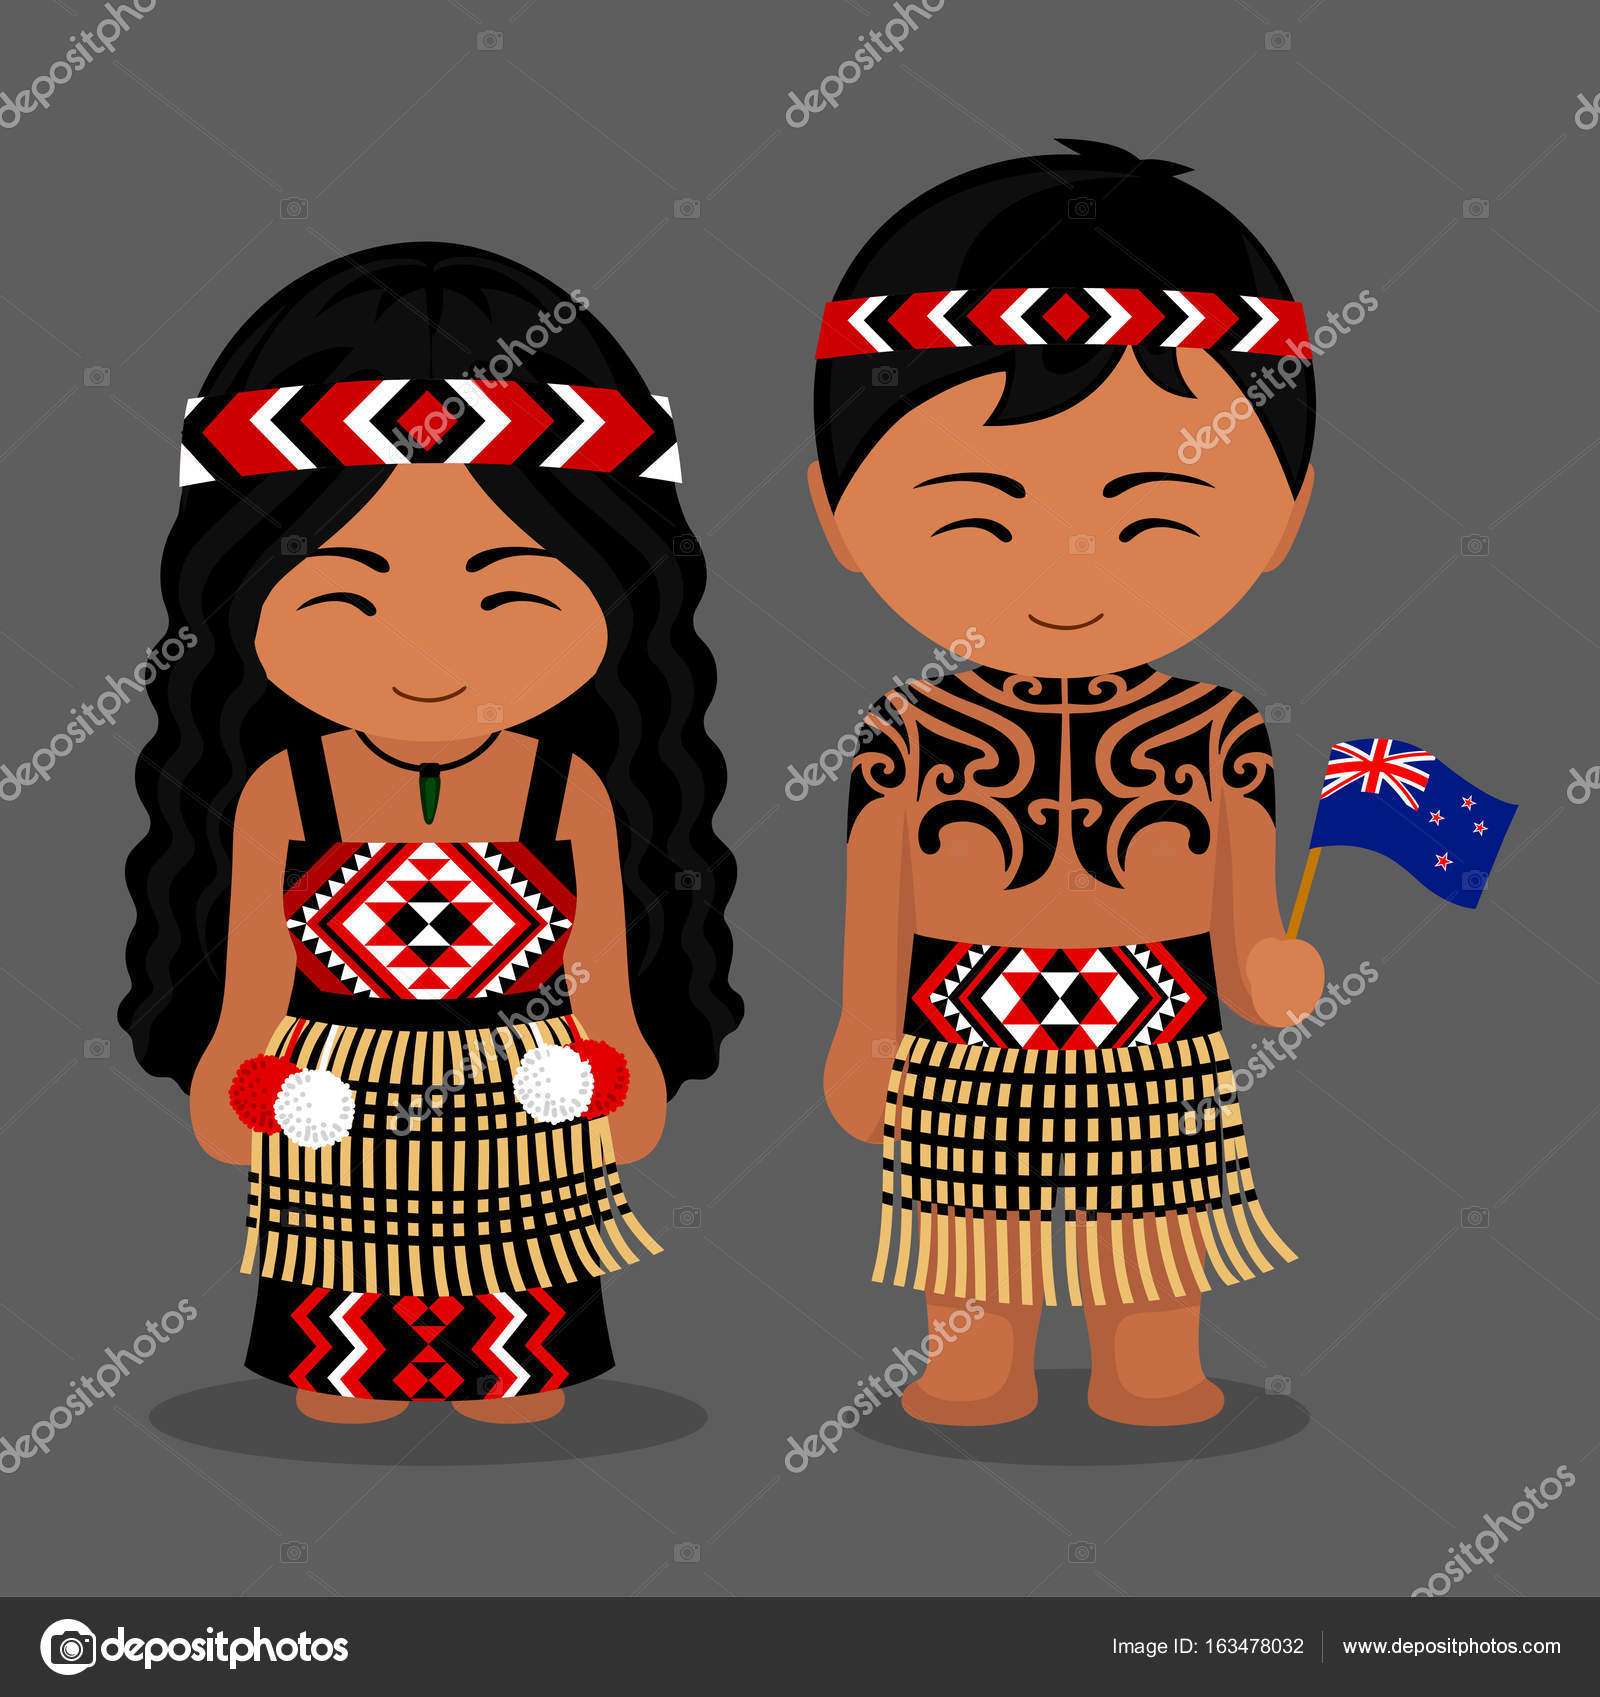 Image result for maori cartoon person girl